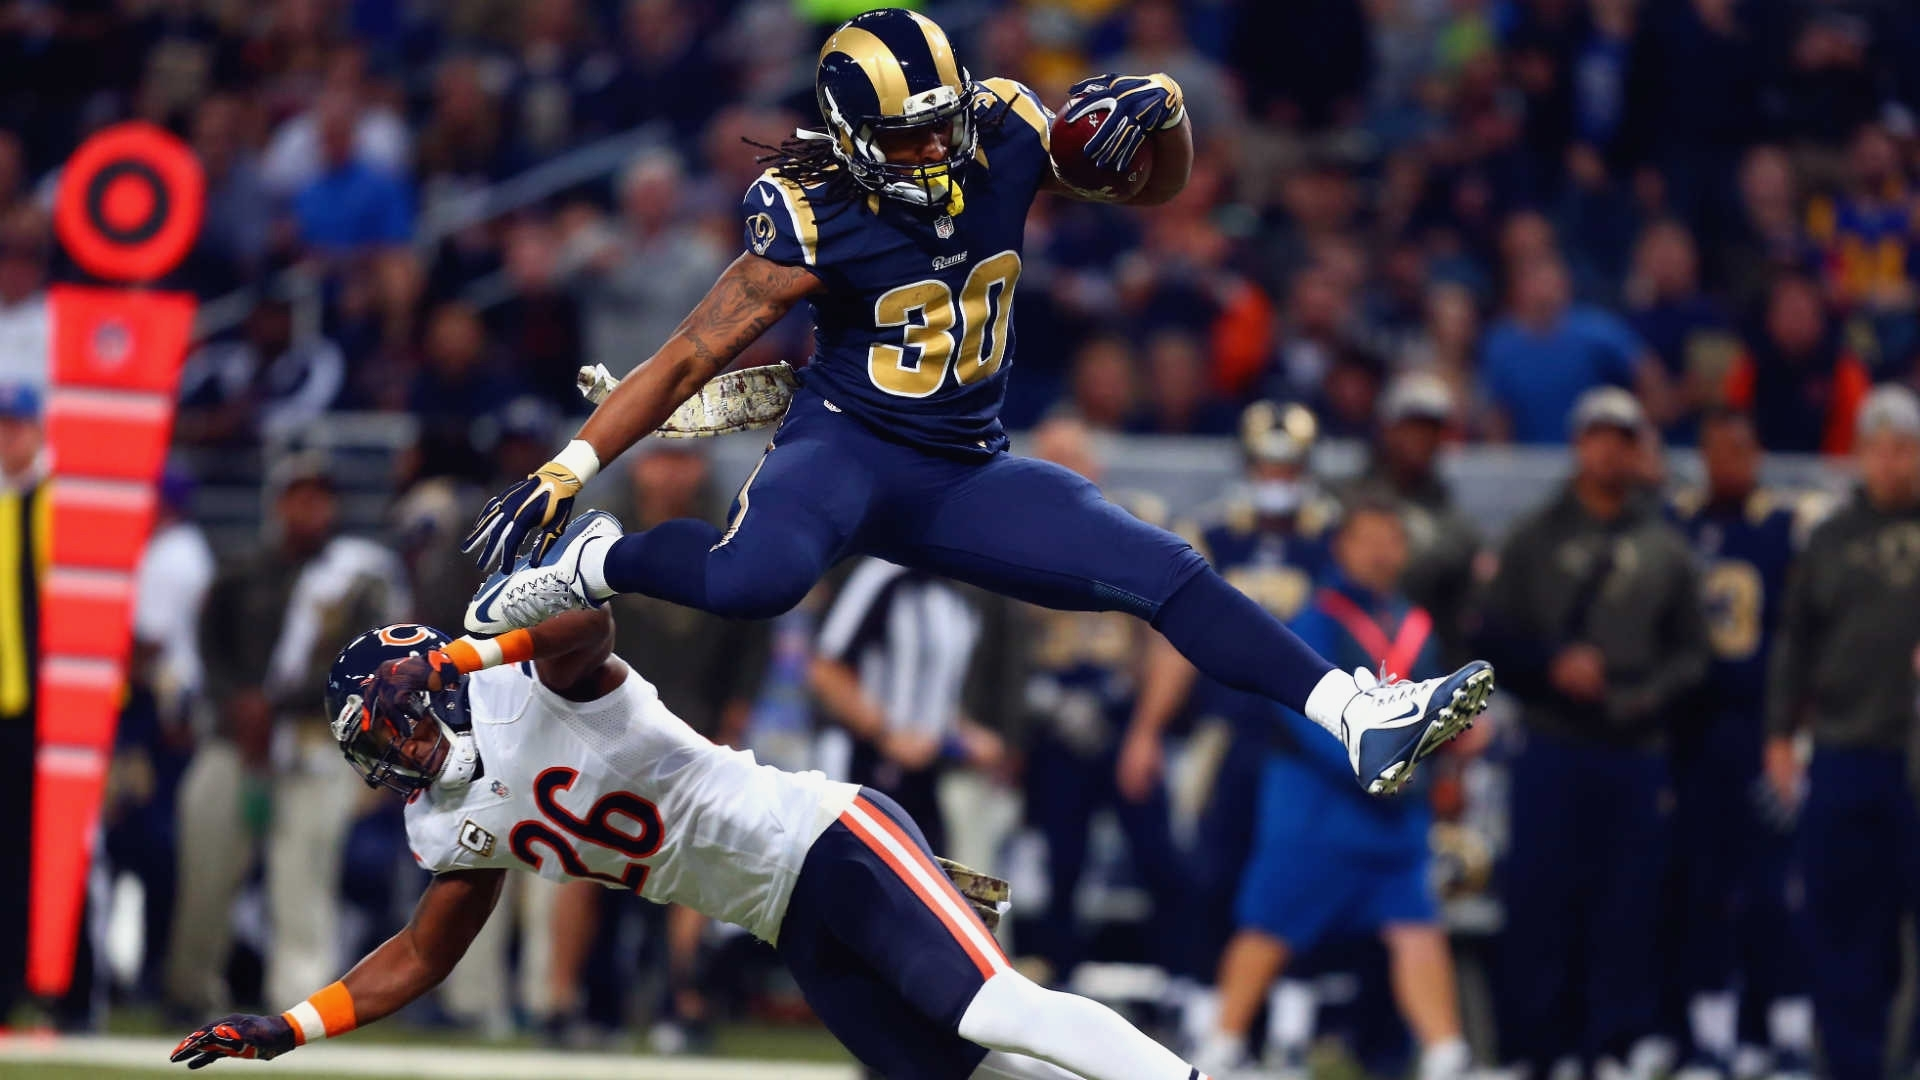 todd gurley wallpaper - free download images and picture - wallrich